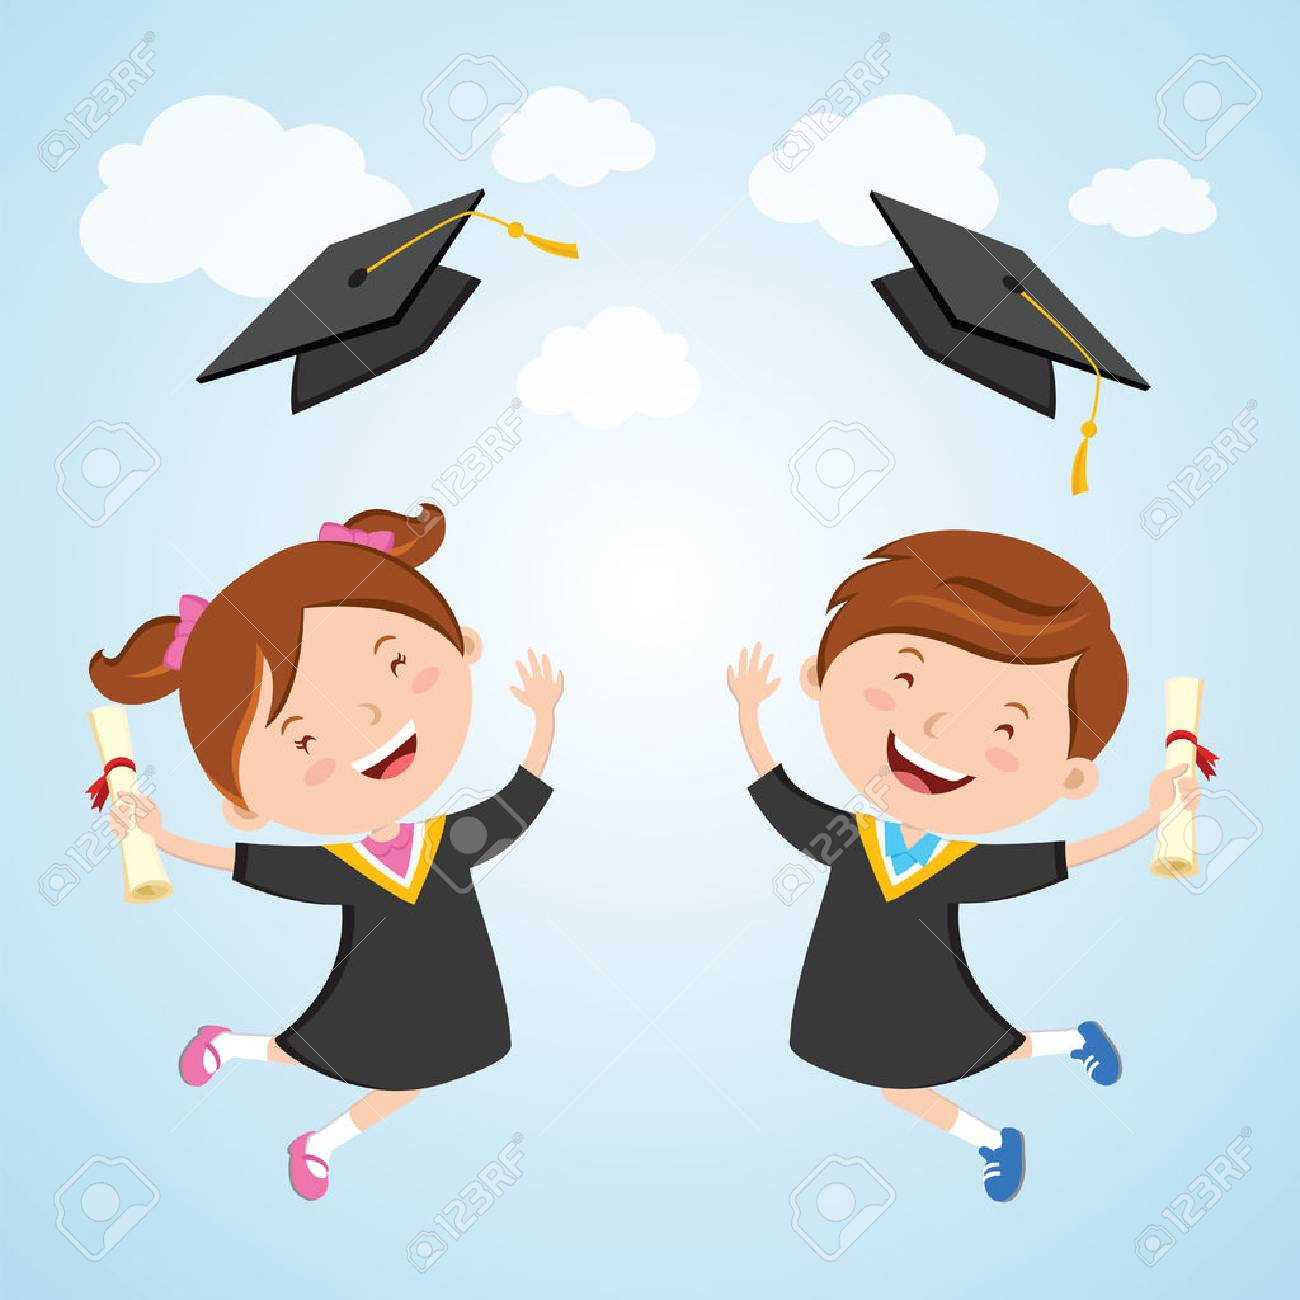 happy graduation day little children jumping for joy and tossing